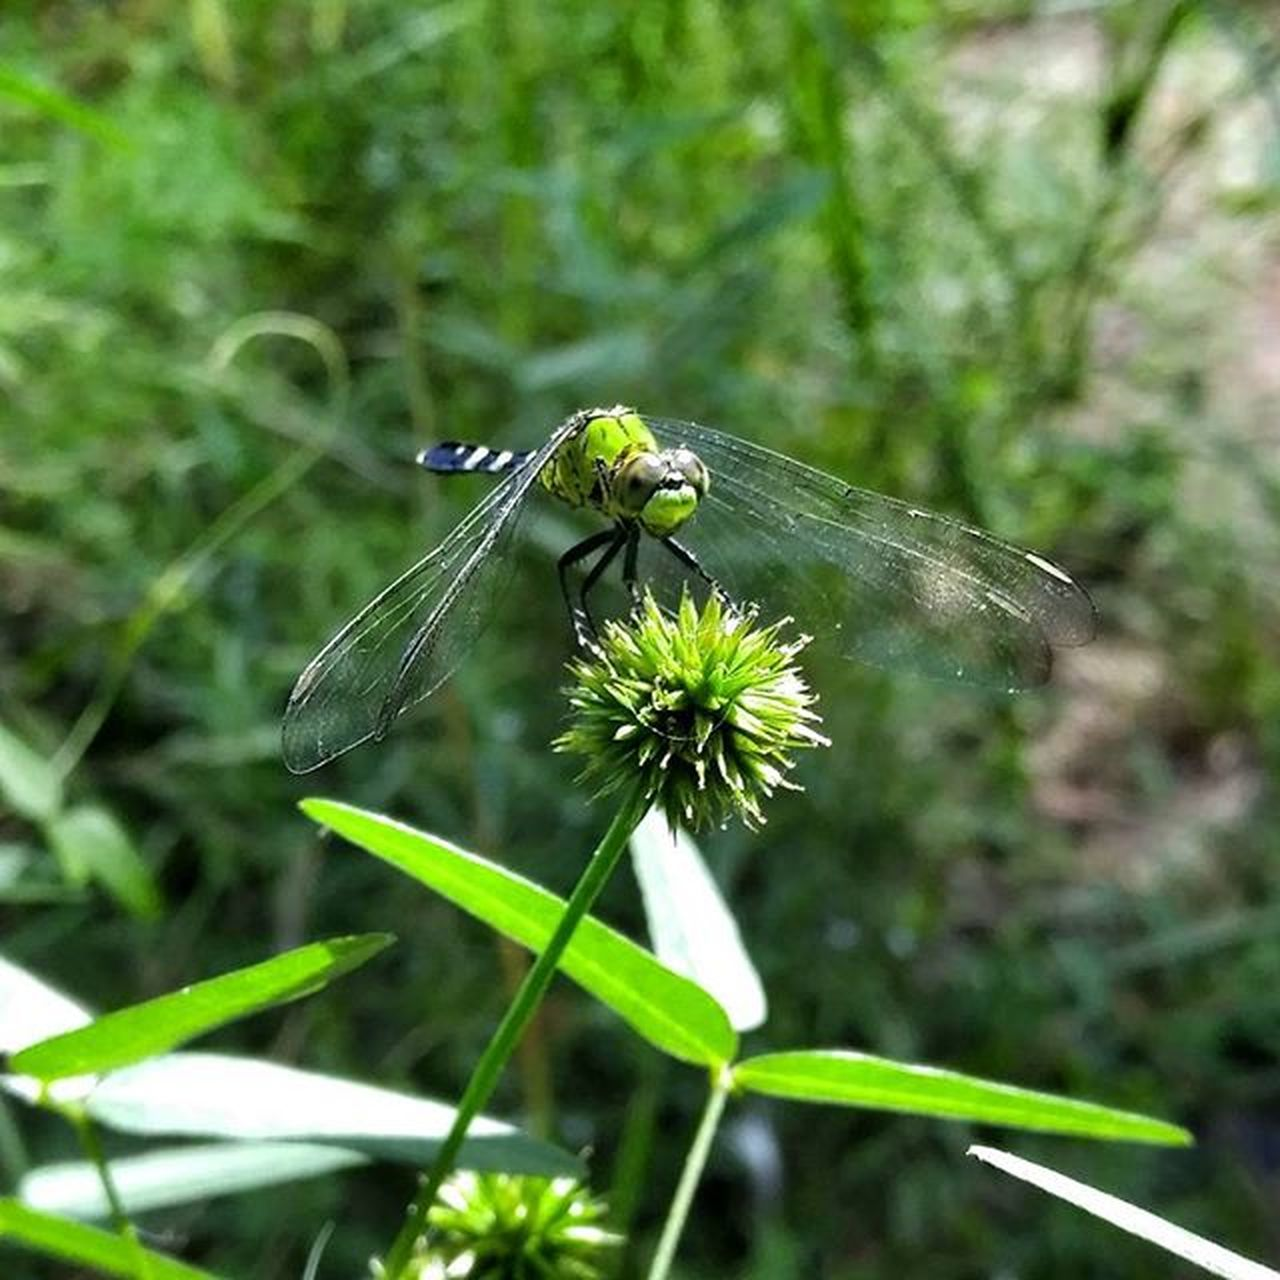 This DraggonFly ( EasternPondHawk ) travelled with me on my entire hike on the Lonestar Trail in Samhouston Nationalforest , always landing and peepin me out every time I stopped to Absorb my Surroundings . I got a few great shots but Love this one... She had brothers and sisters join in on our journey but she always stayed juat ahead of me as if she was guiding me. For me this Beautiful being embodied my Angels that watch over me. Blessed  Hiking Exploring ProgressiveRelaxation Feedingmysoul Greatoutdoors TheLittleThingsInLife is what I mostly Appreciate Goout MakeItHappen Nature Wildlife Special Noedit taken with my LGG4 Manualfocus